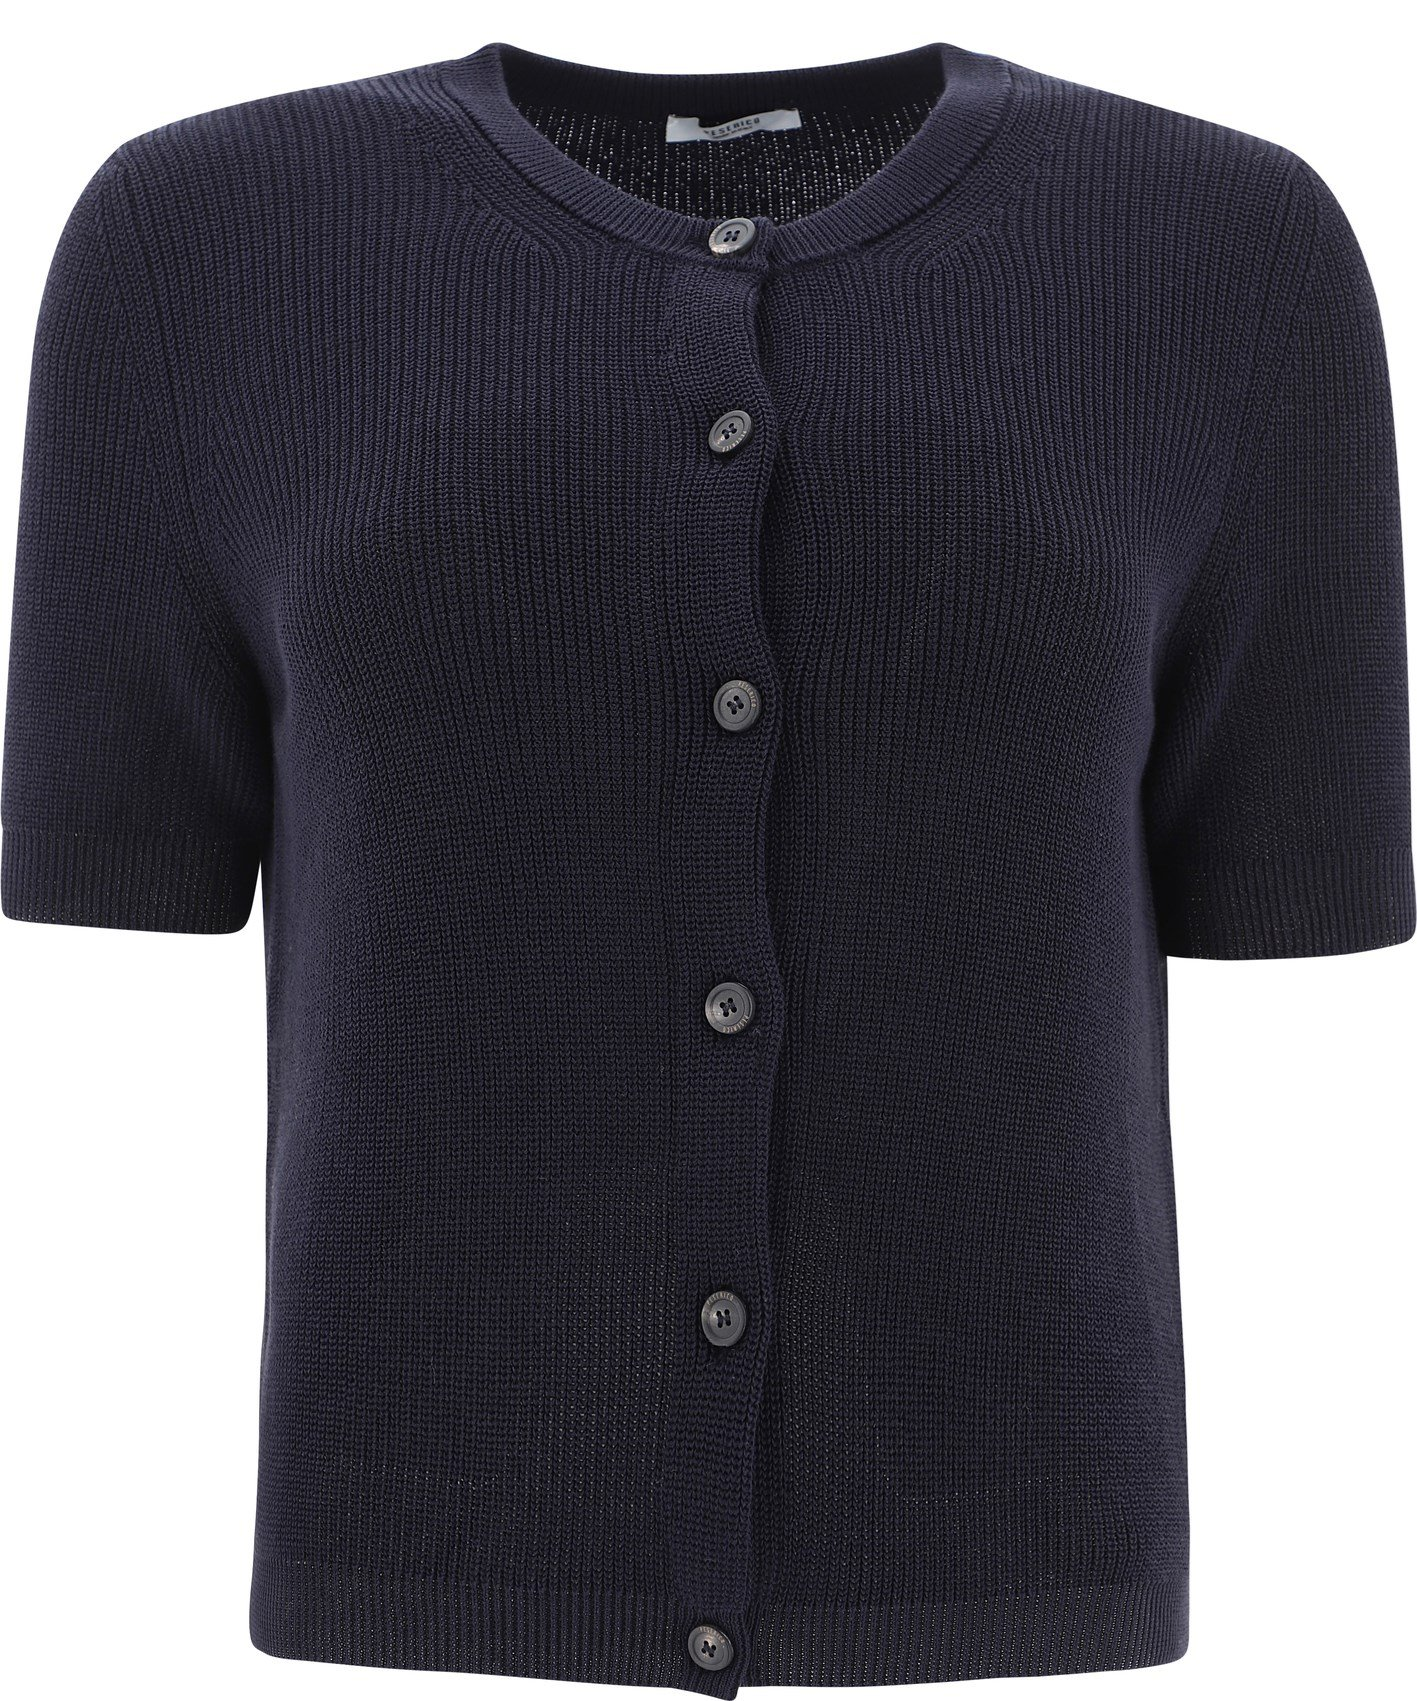 Short-sleeved tricot cardigan